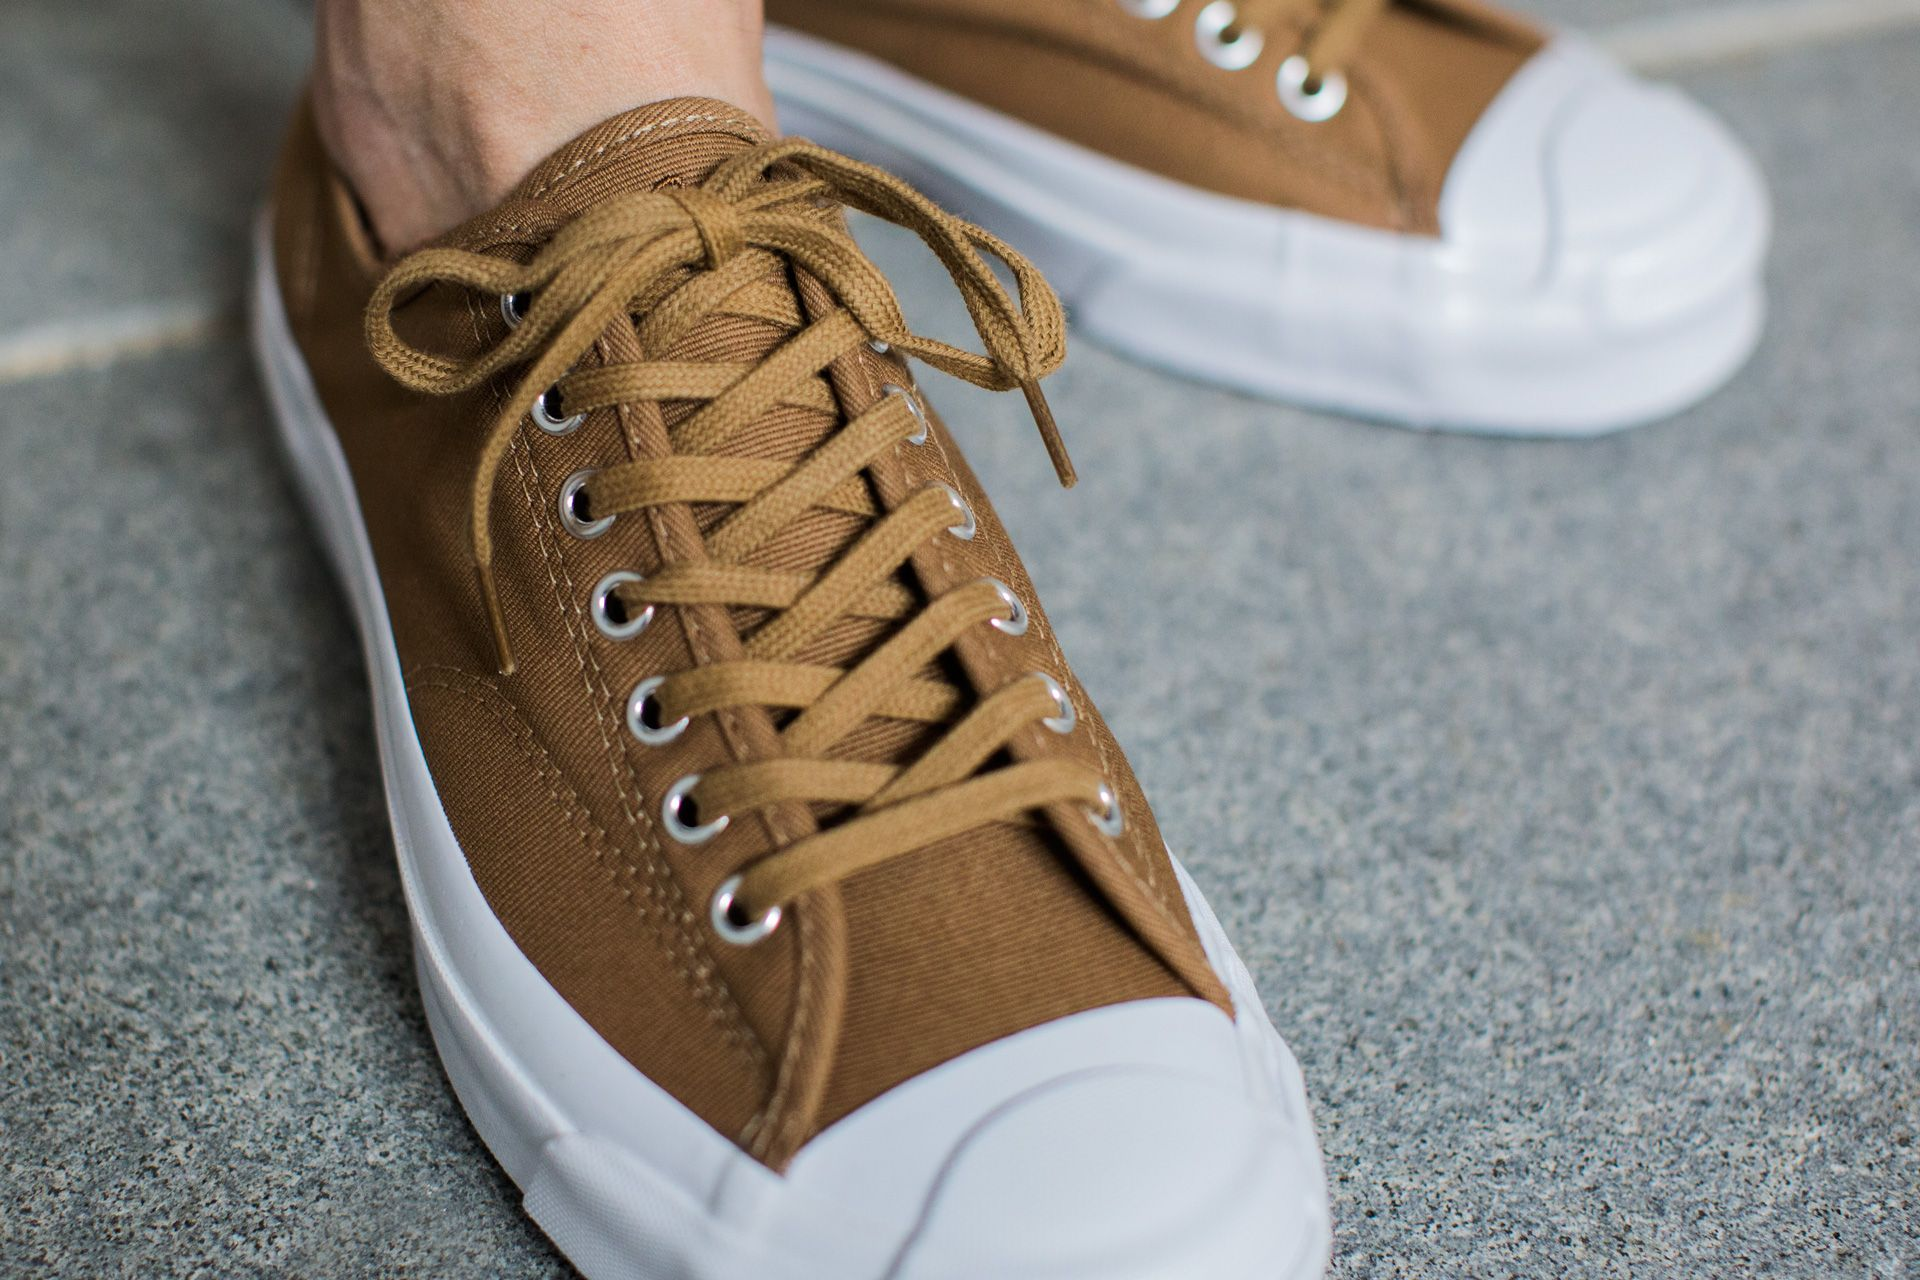 886ae56f3ba11e CONVERSE JACK PURCELL SIGNATURE OX SAND DUNE NA available at  www.tint-footwear.com converse-jack-purcell-149914c converse jack purcell  classic retro sneaker ...